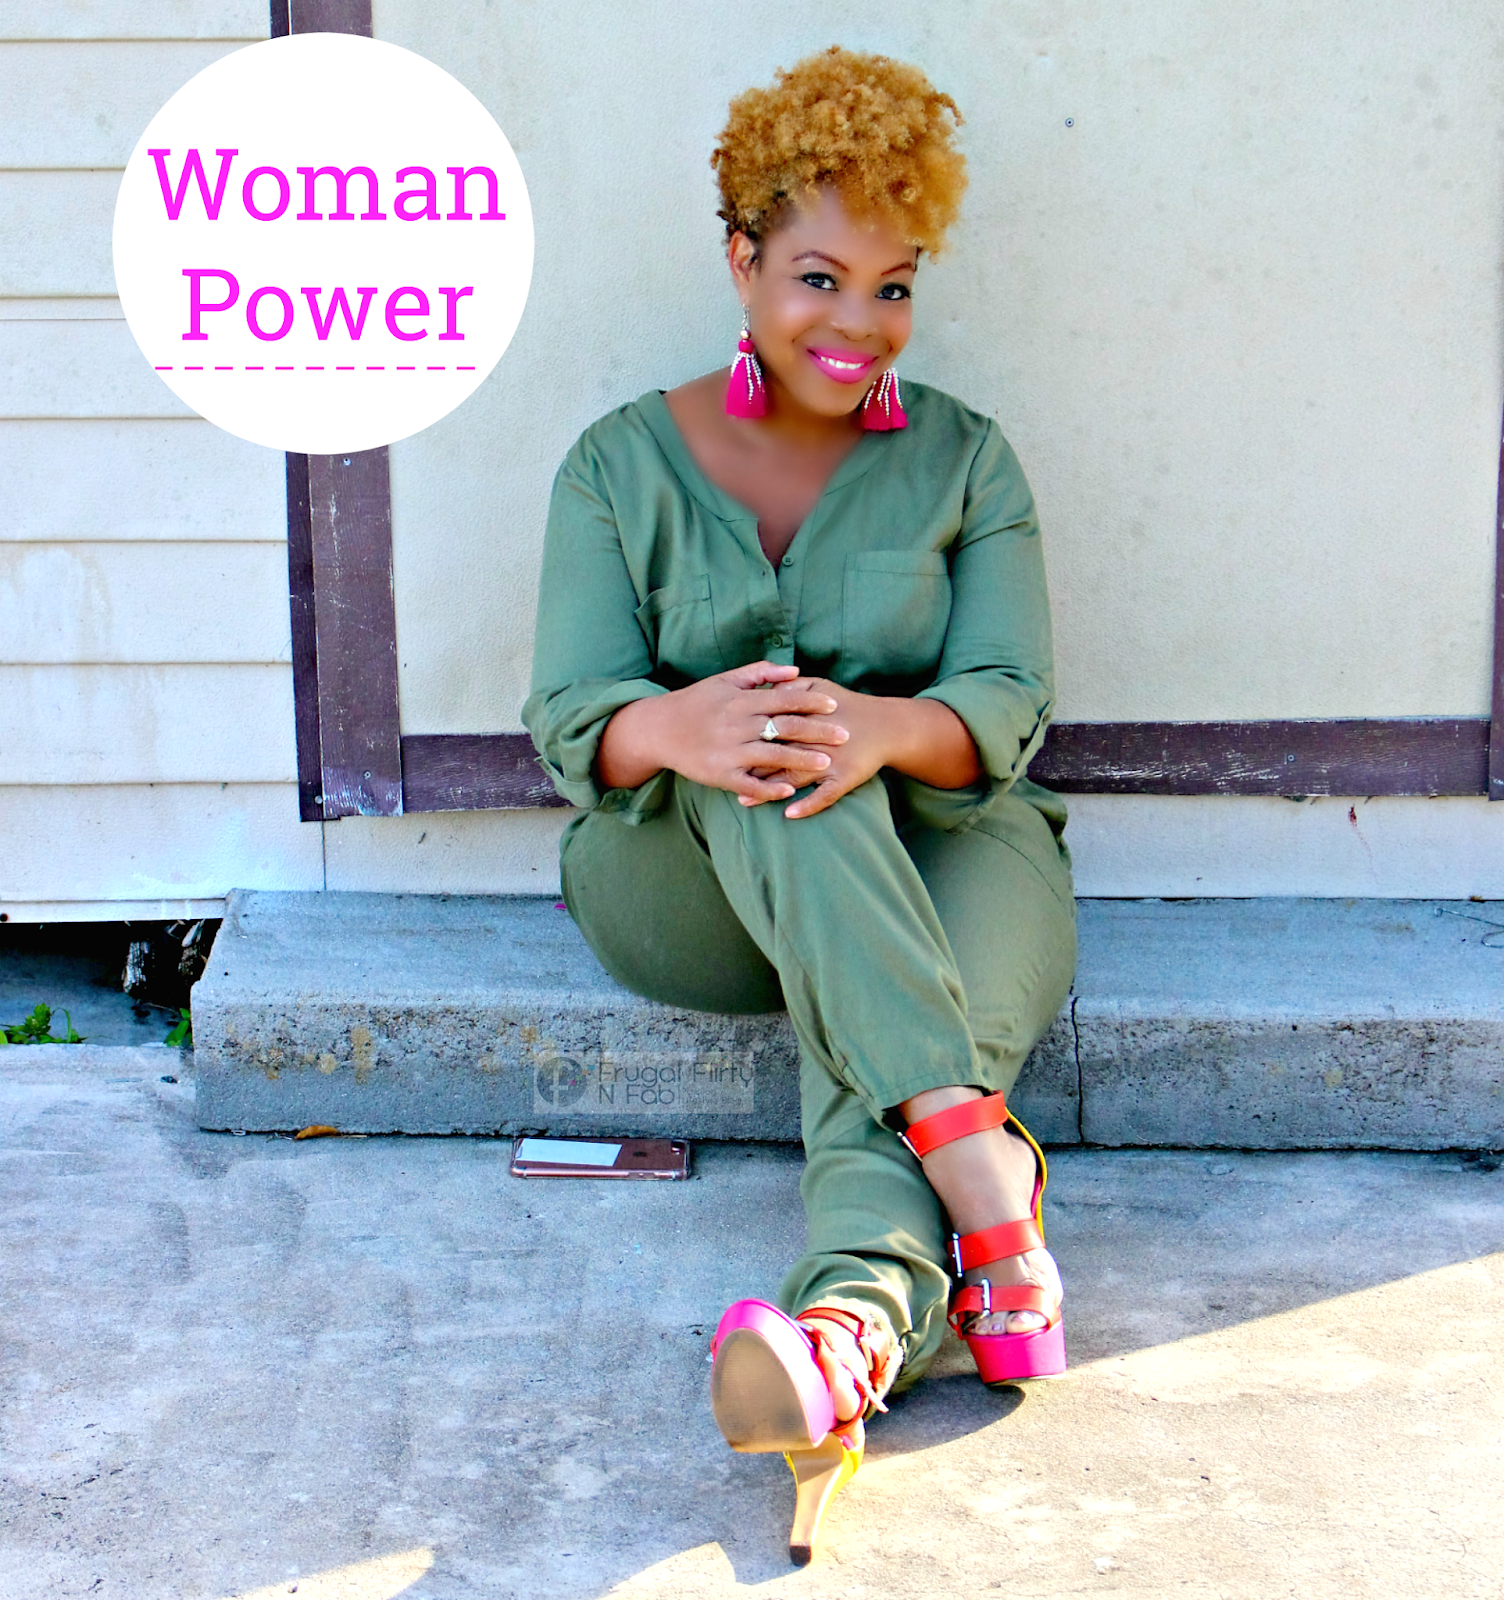 Women, Boss, Girl Power, Athletes, Moms, Business Owners, Motivation